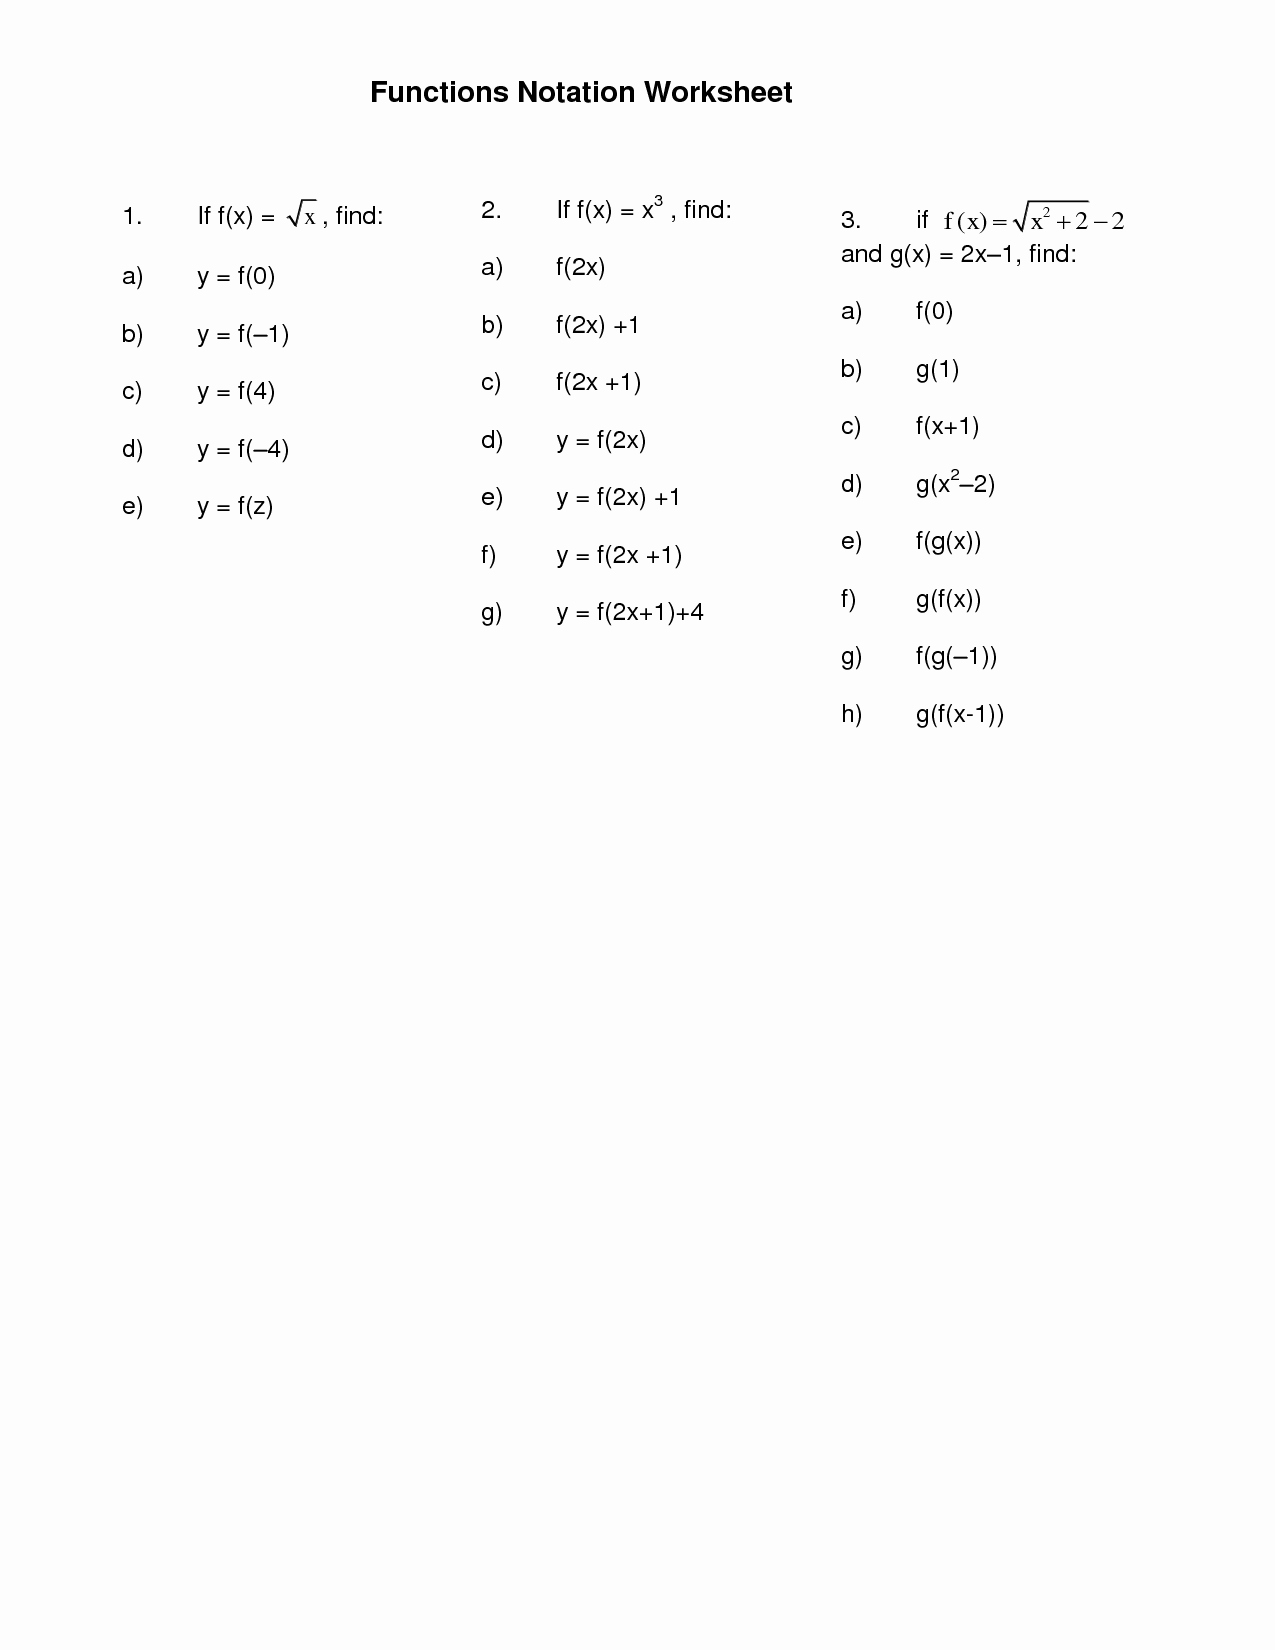 Function Notation Worksheet Answers Awesome 12 Best Of Function Notation Algebra Worksheets